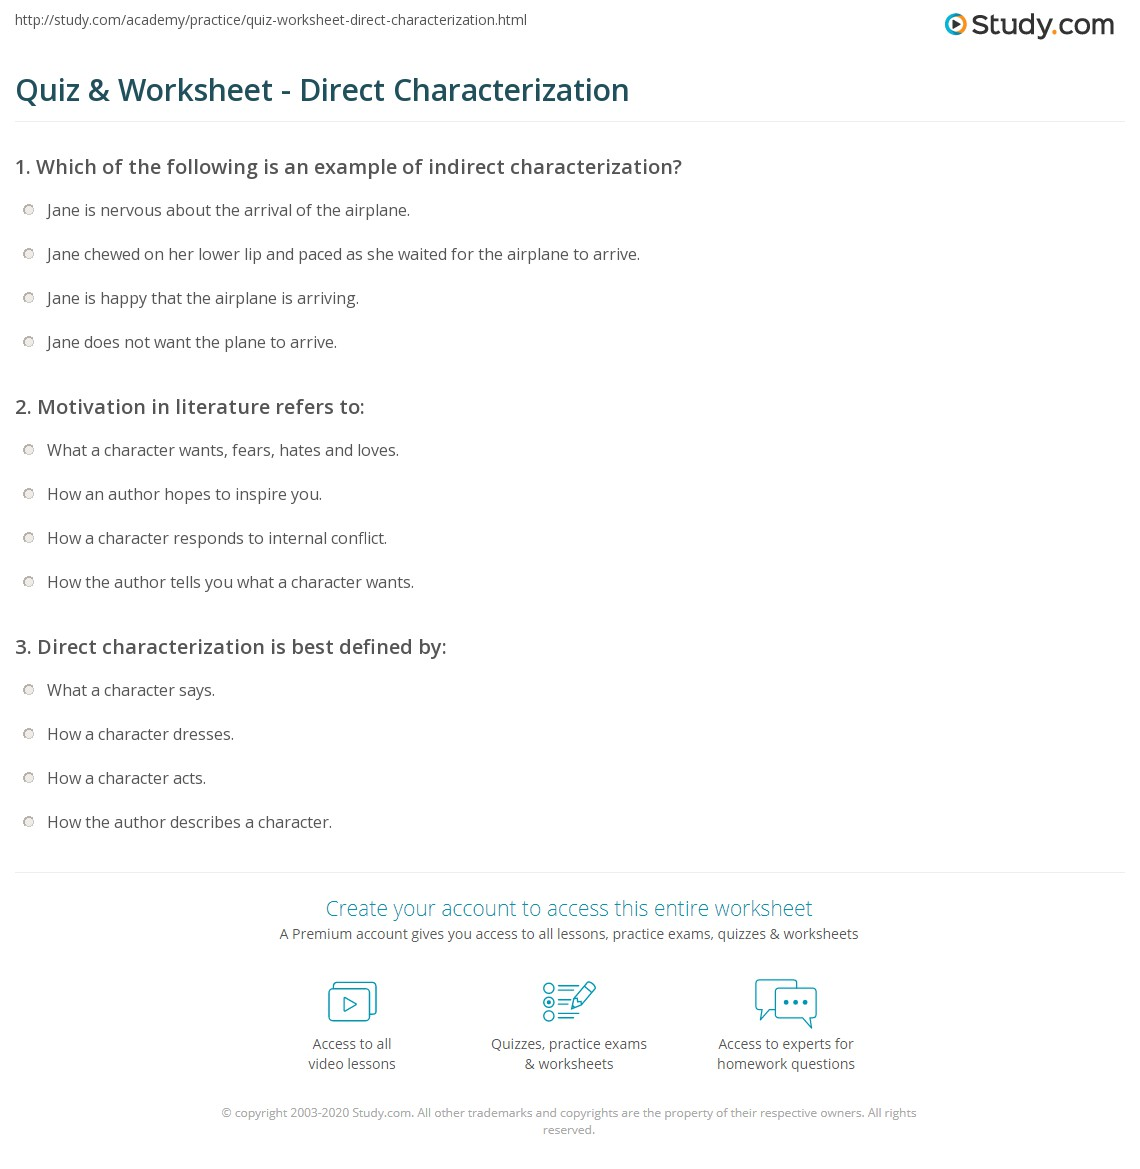 Free Worksheet Direct And Indirect Characterization Worksheet quiz worksheet direct characterization study com print definition examples worksheet